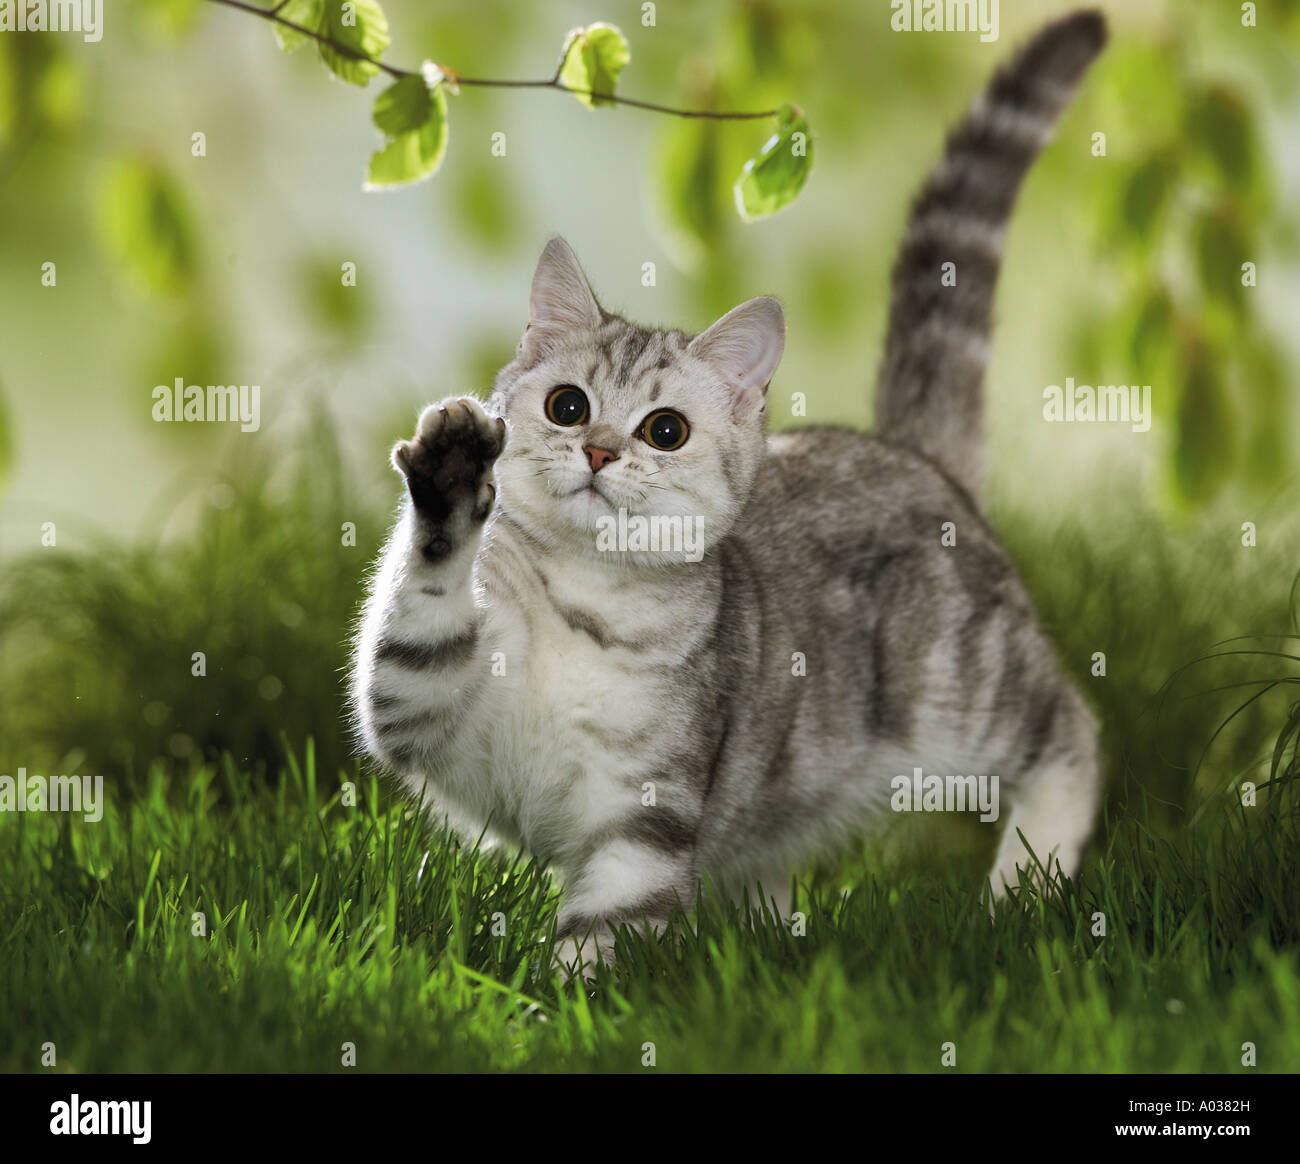 British Shorthair cat - playing with twig Stock Photo